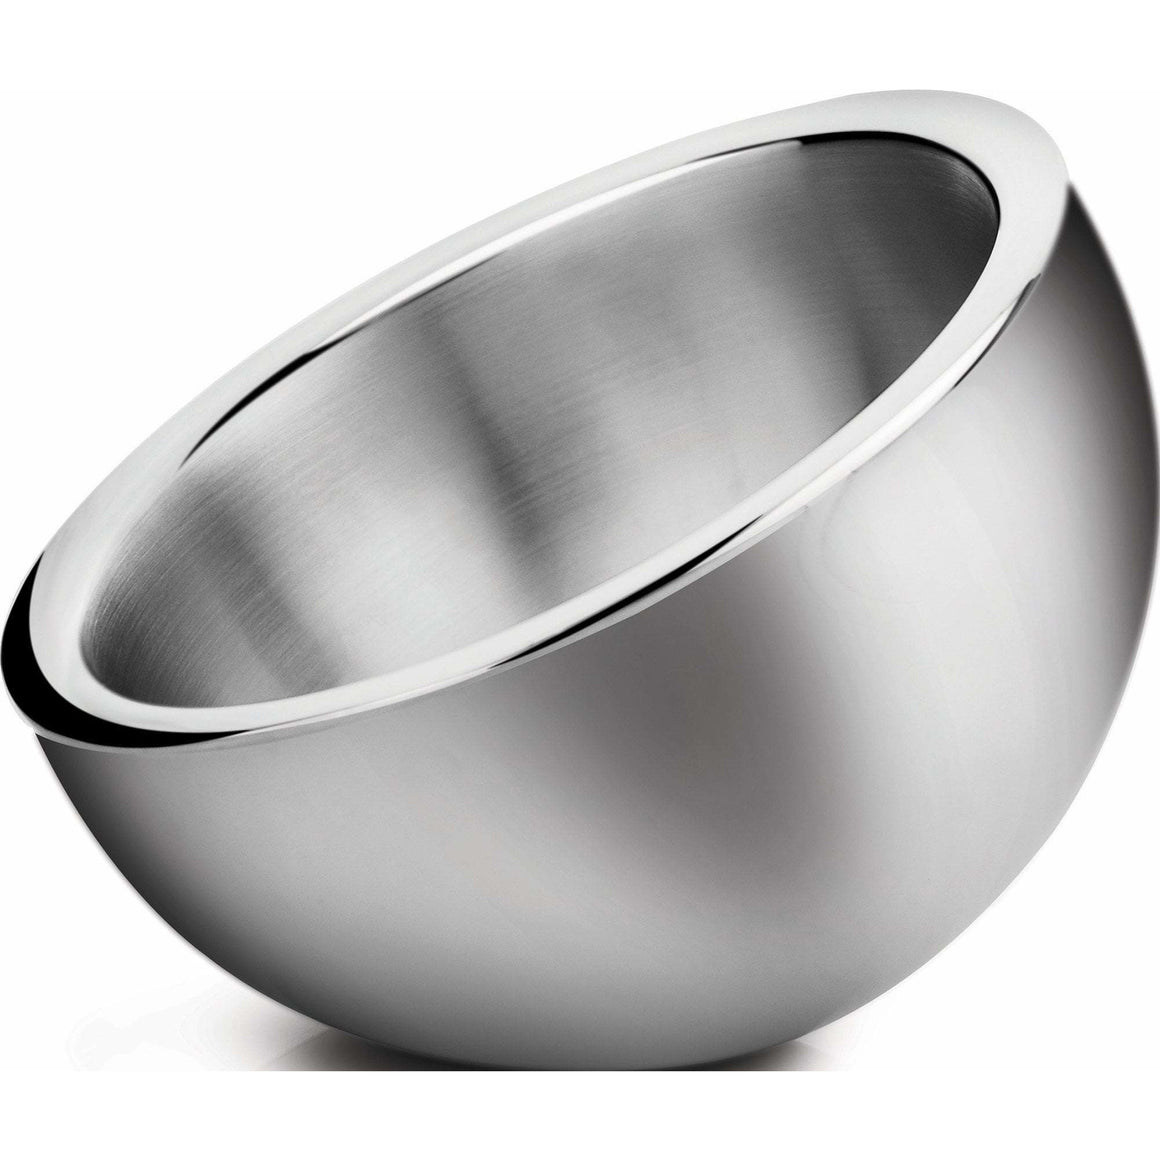 Winco - DWAB-L - 2-1/4qt Angled Display Bowl, Double Wall Insulated, Stainless Steel - Display